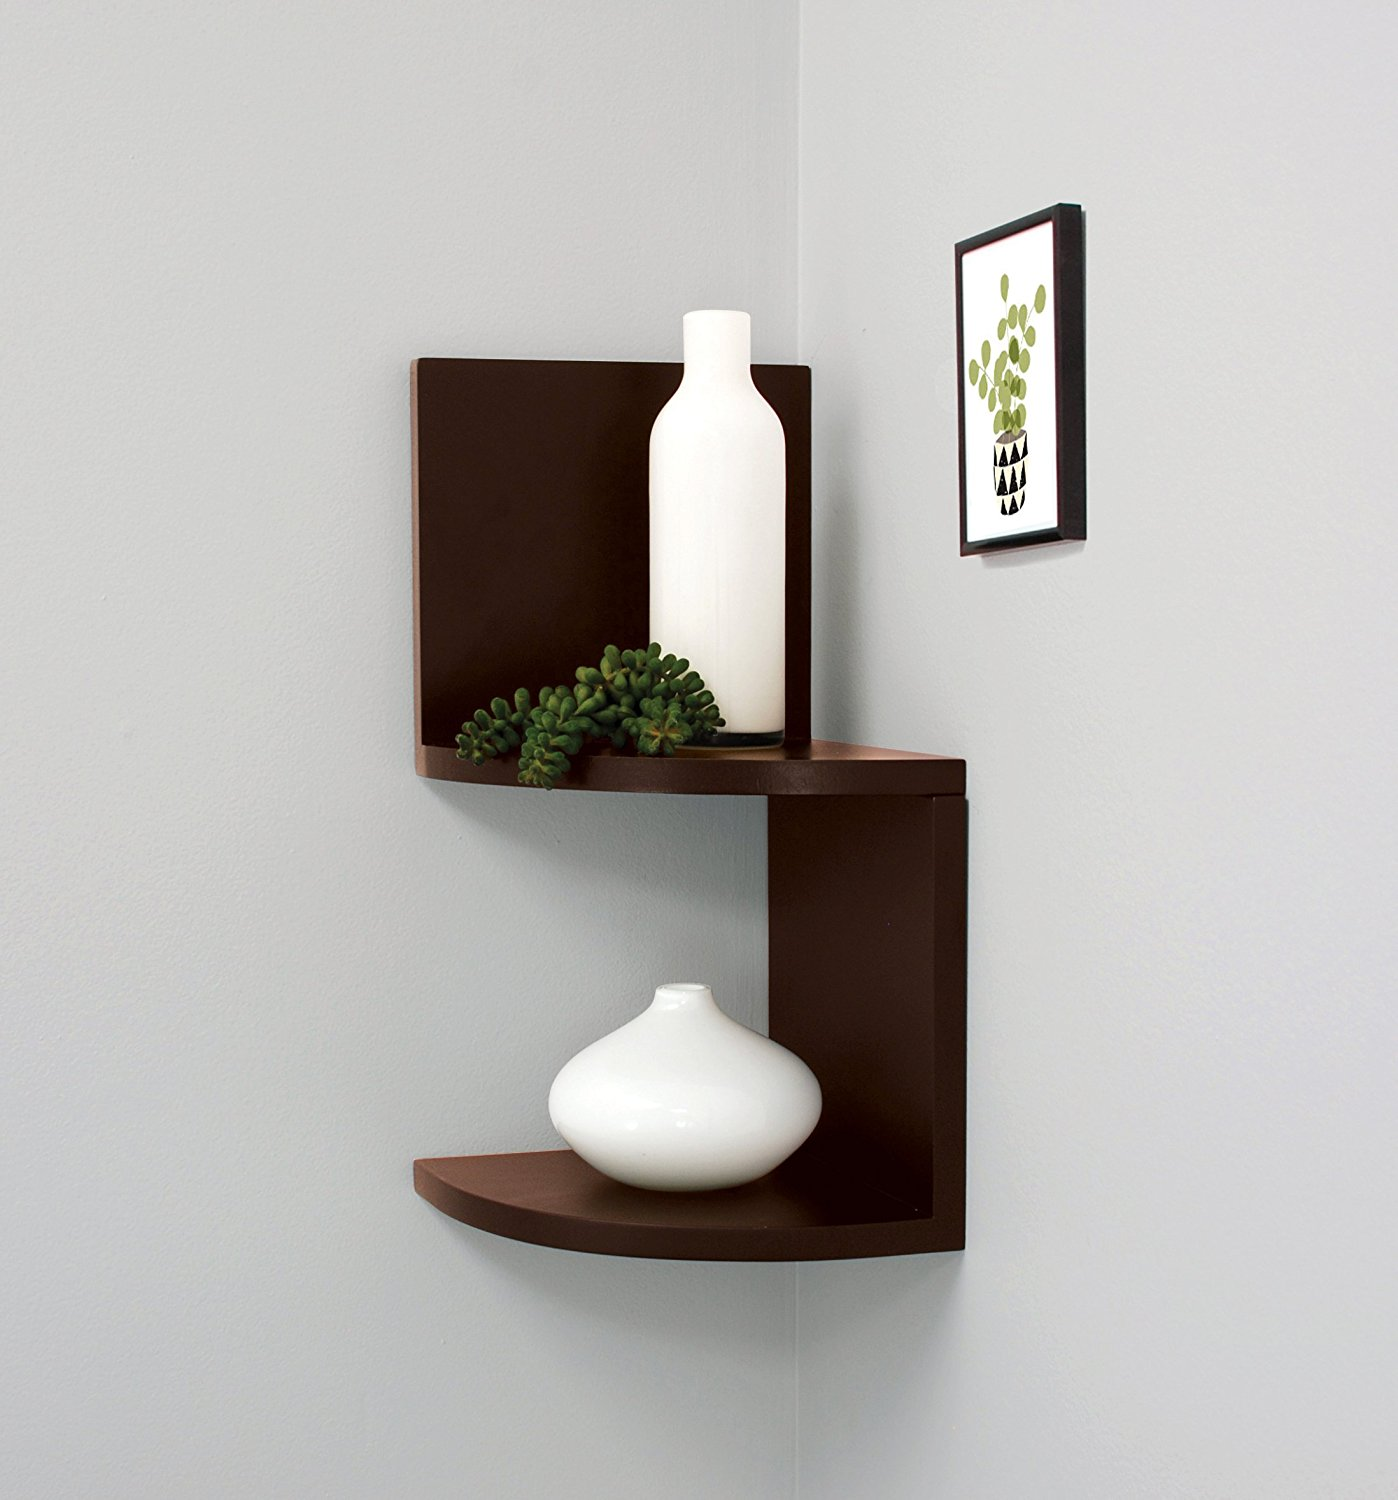 Kiera Grace Priva 2-Tier Corner Shelf, 7.75-Inch by 7.75-Inch Per Tier, Espresso